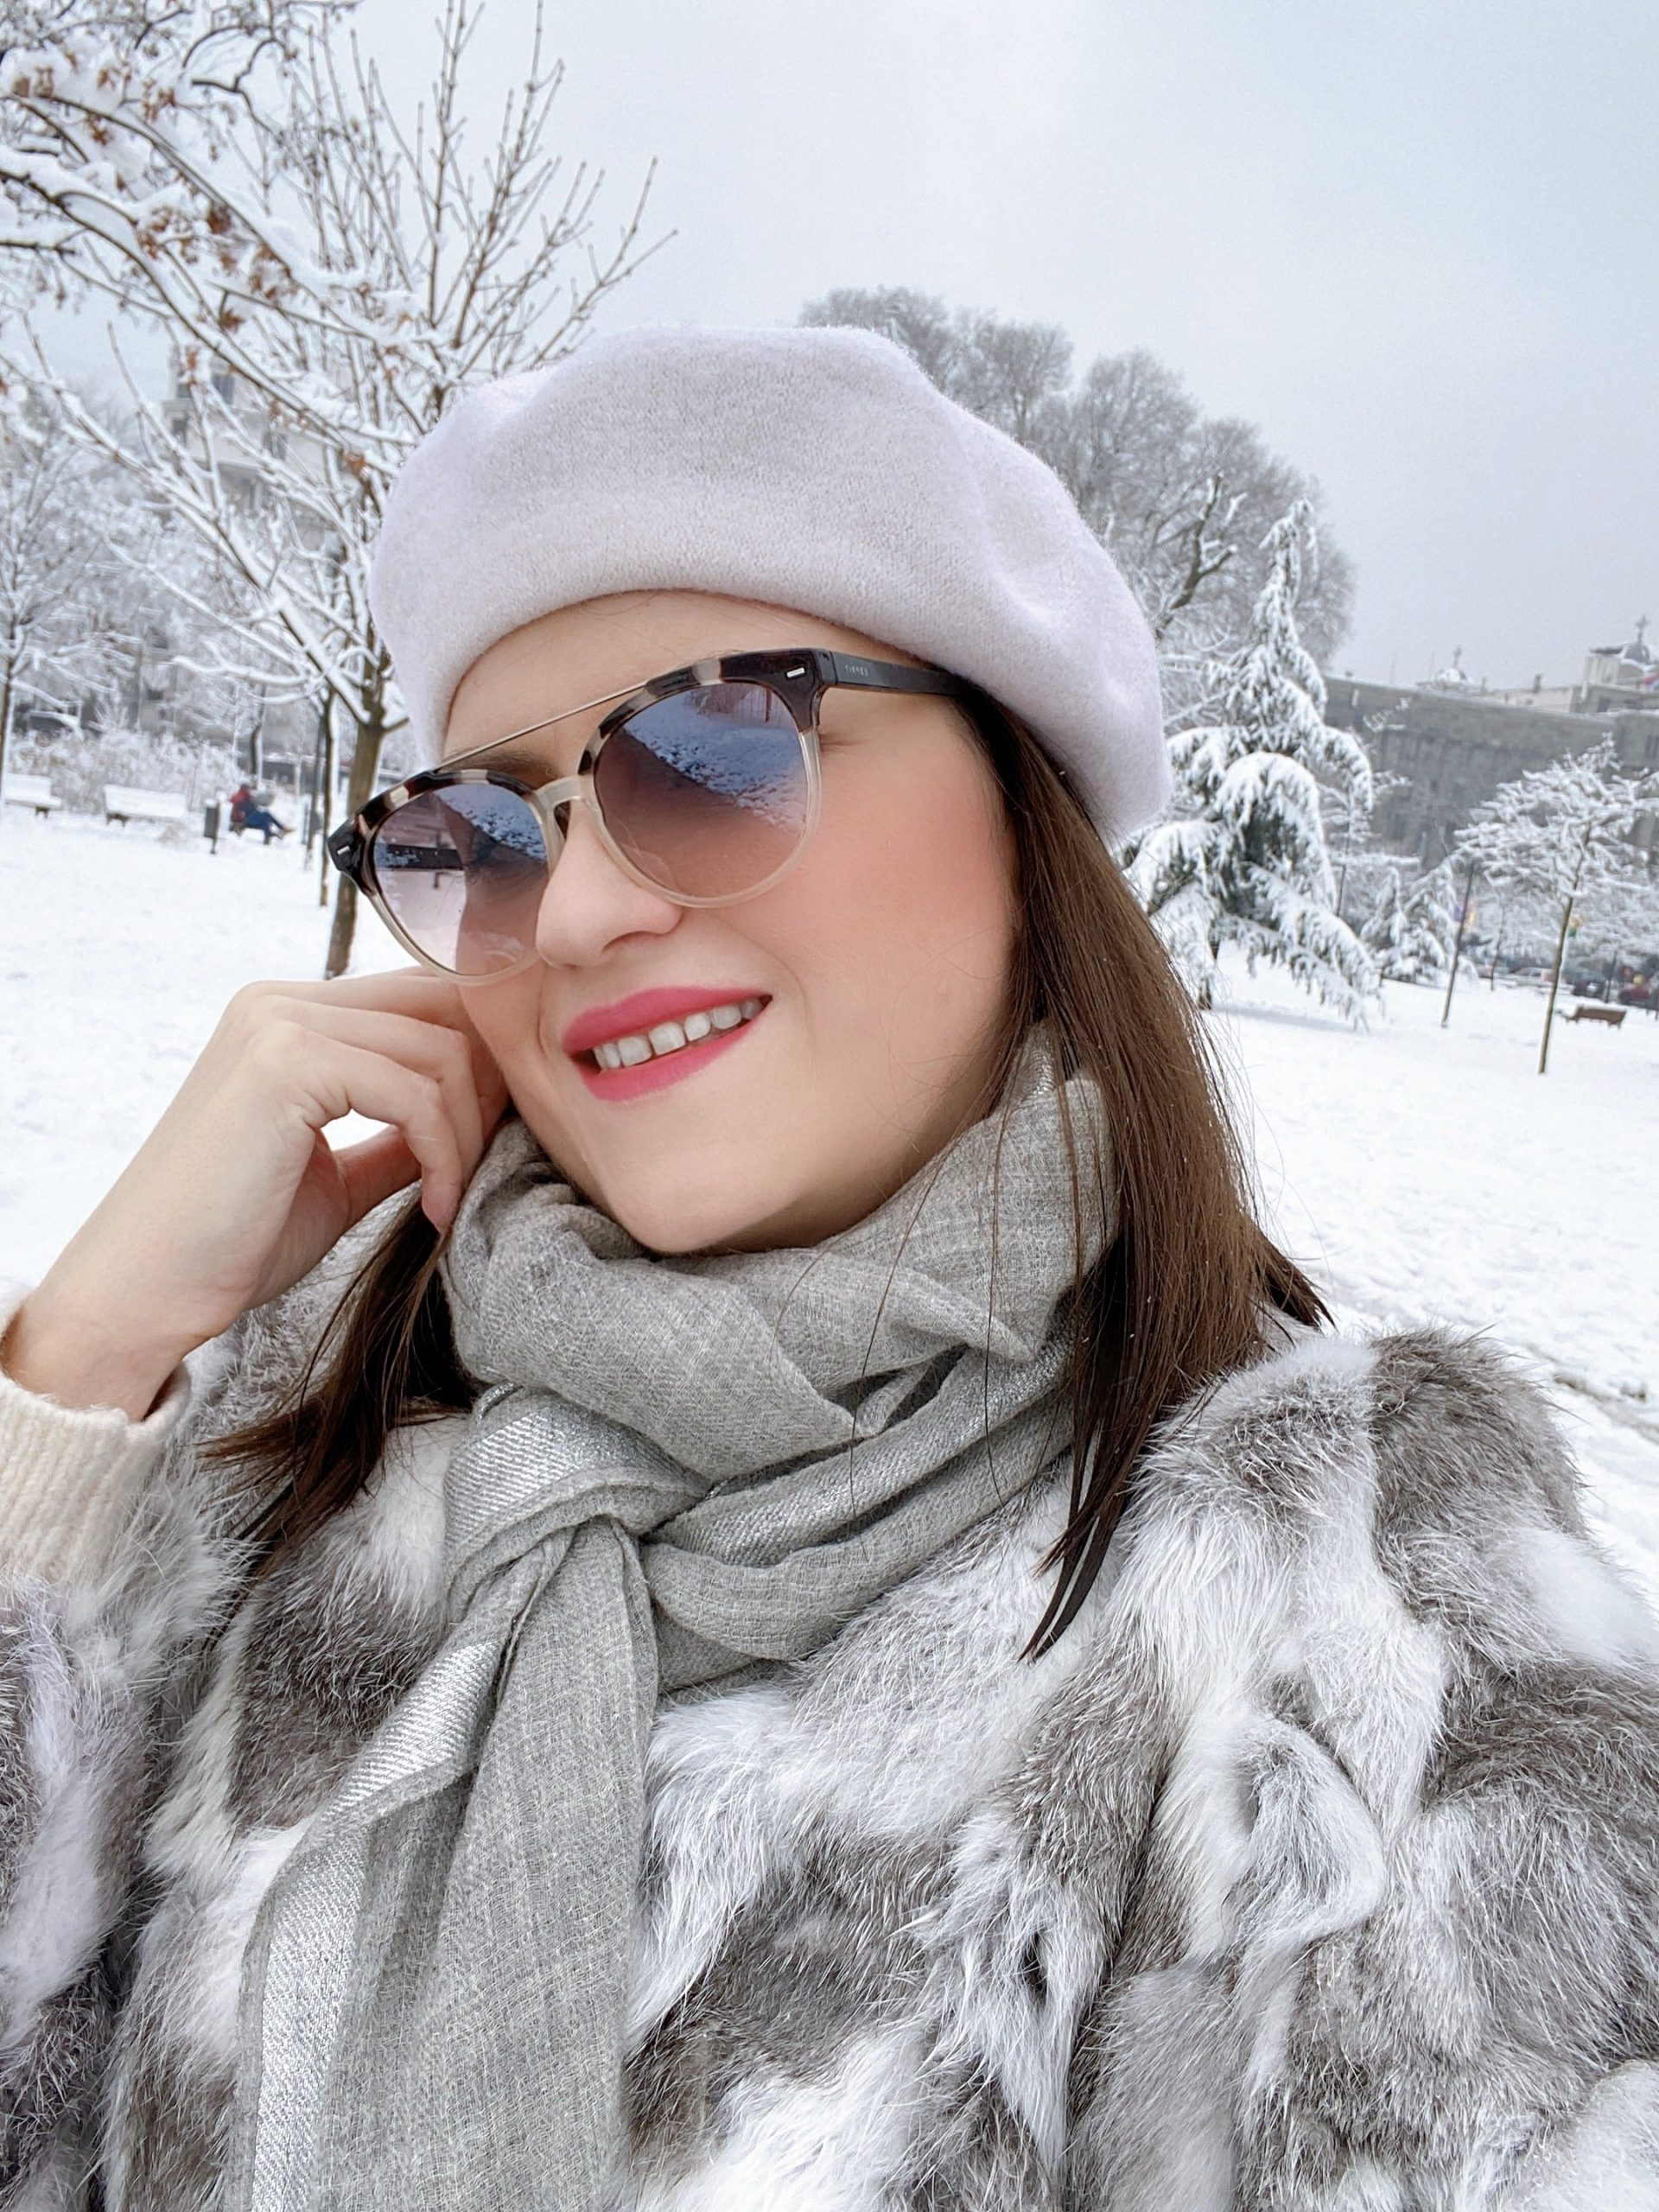 @bambolai's cover photo for 'How to Look Chic in the Snow - BambolaI Fashion'